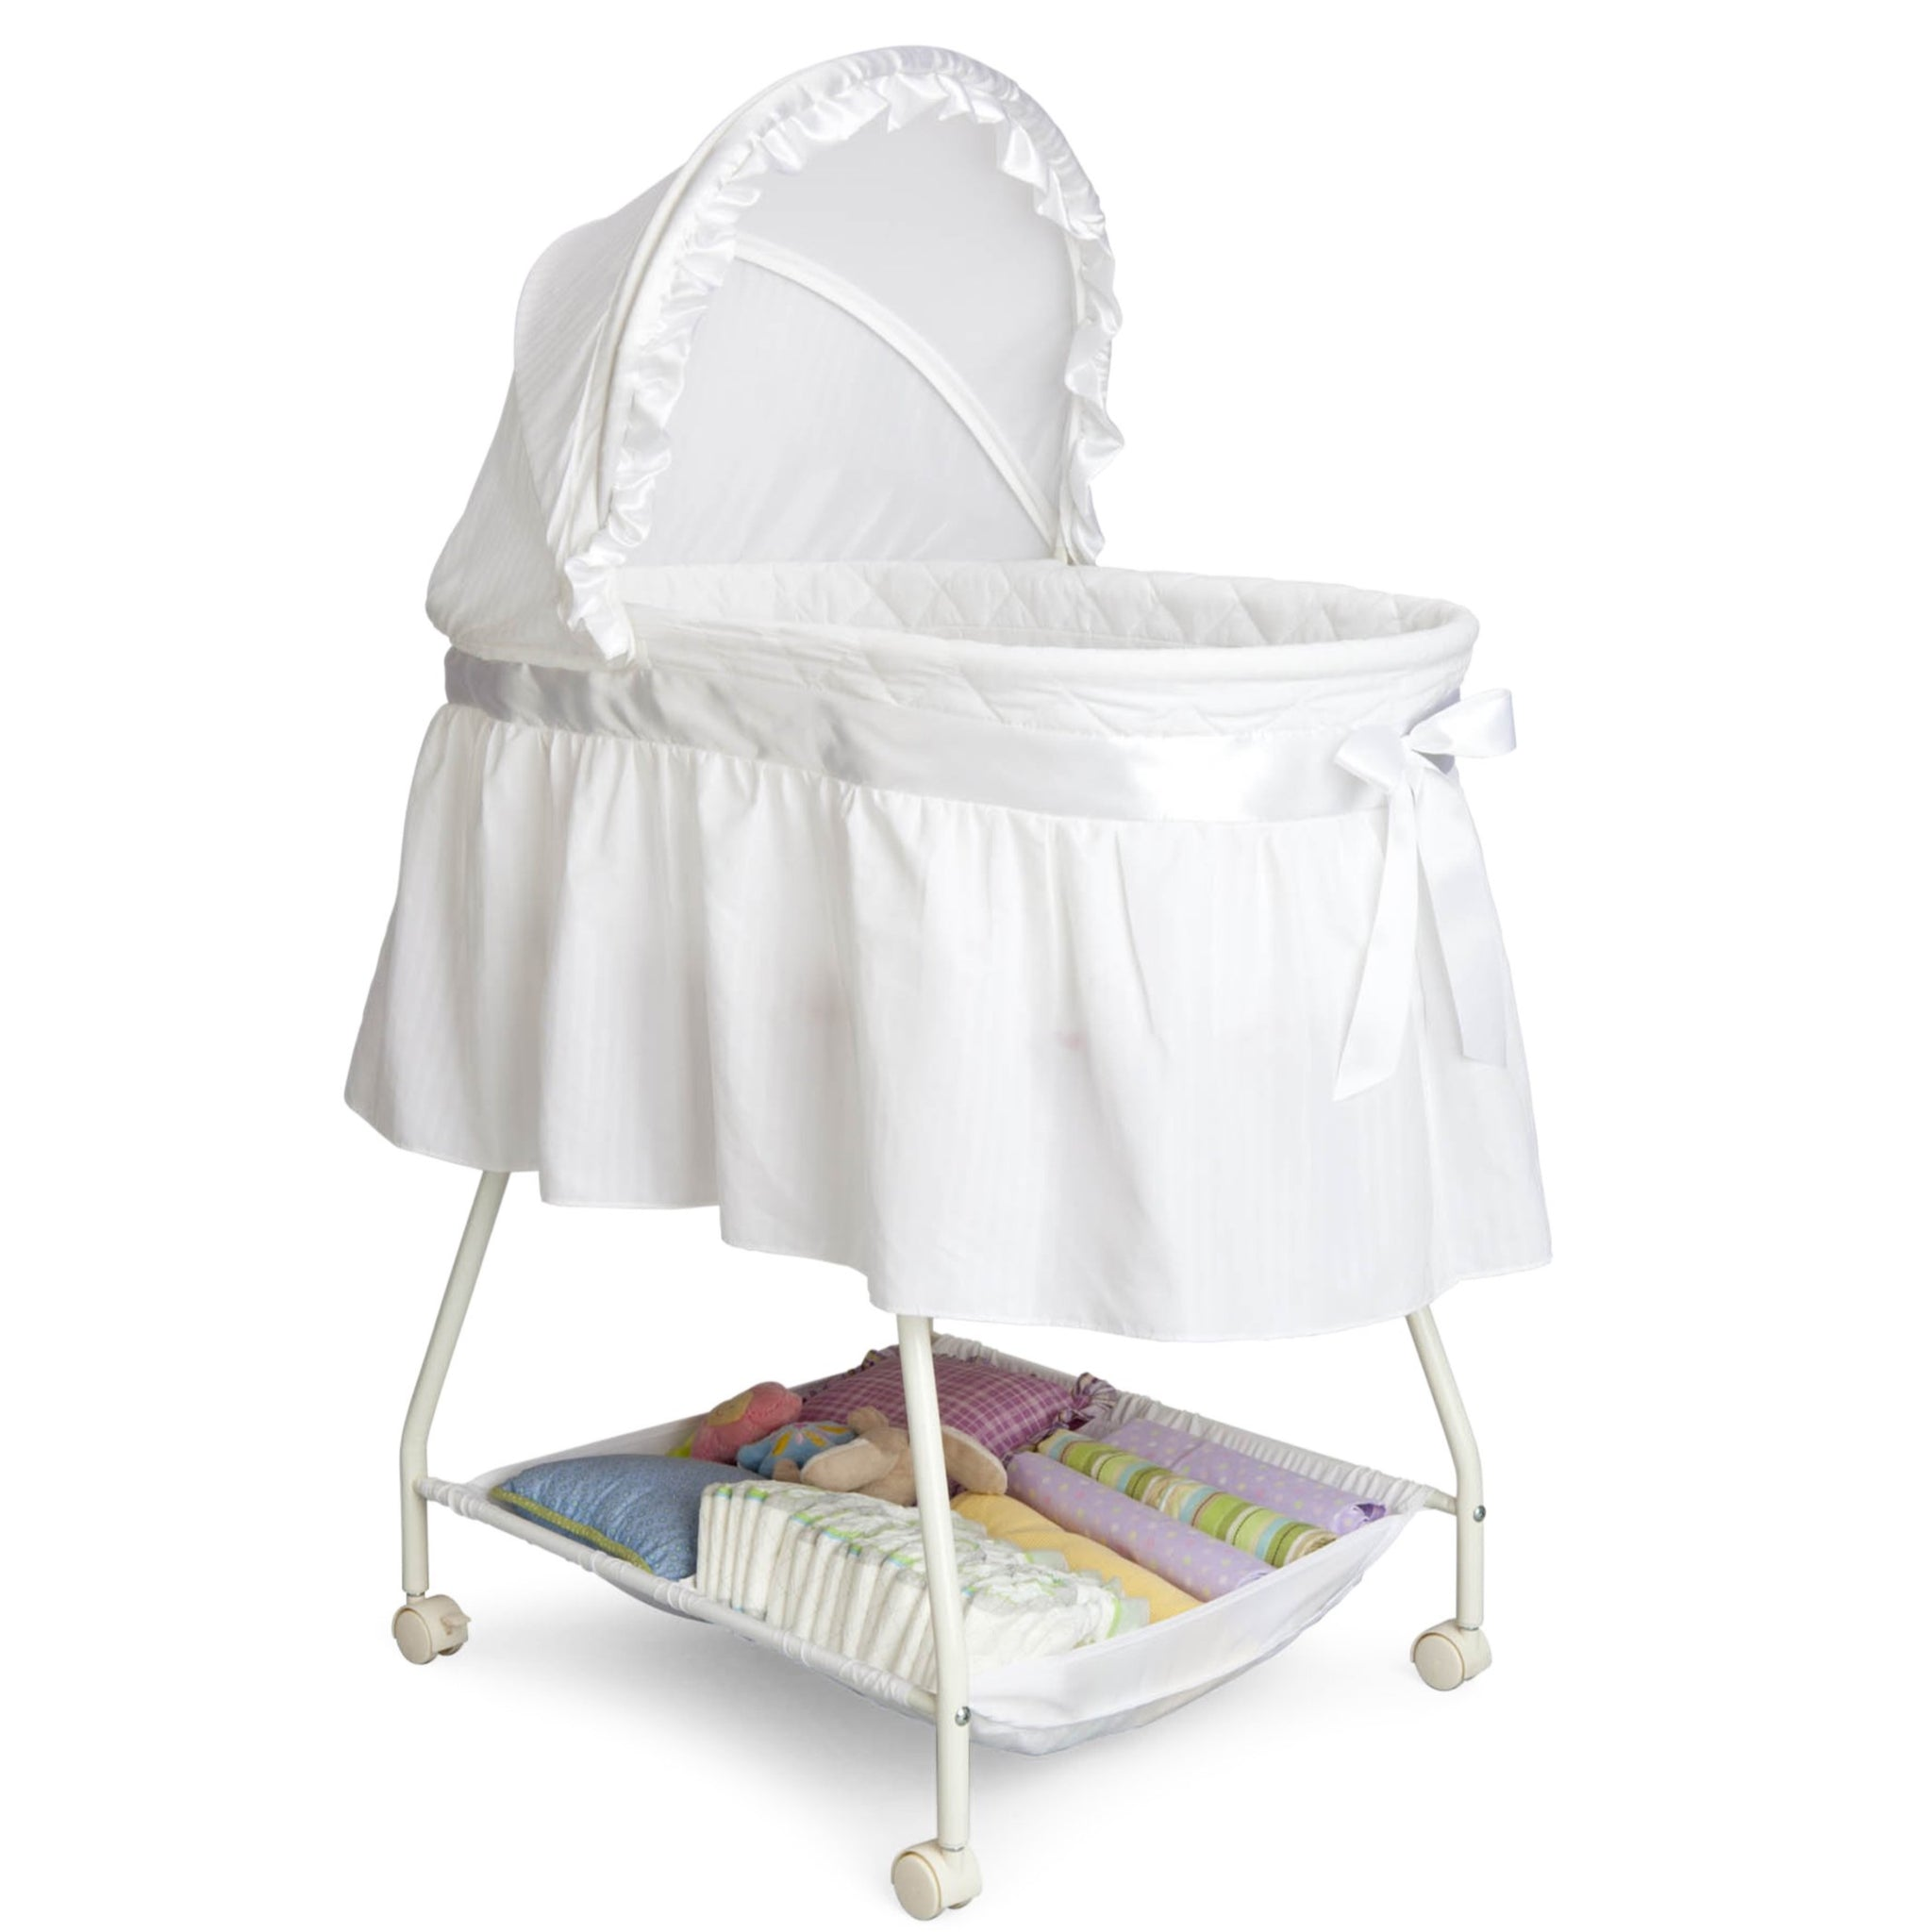 Classic Sweet Beginnings Bassinet